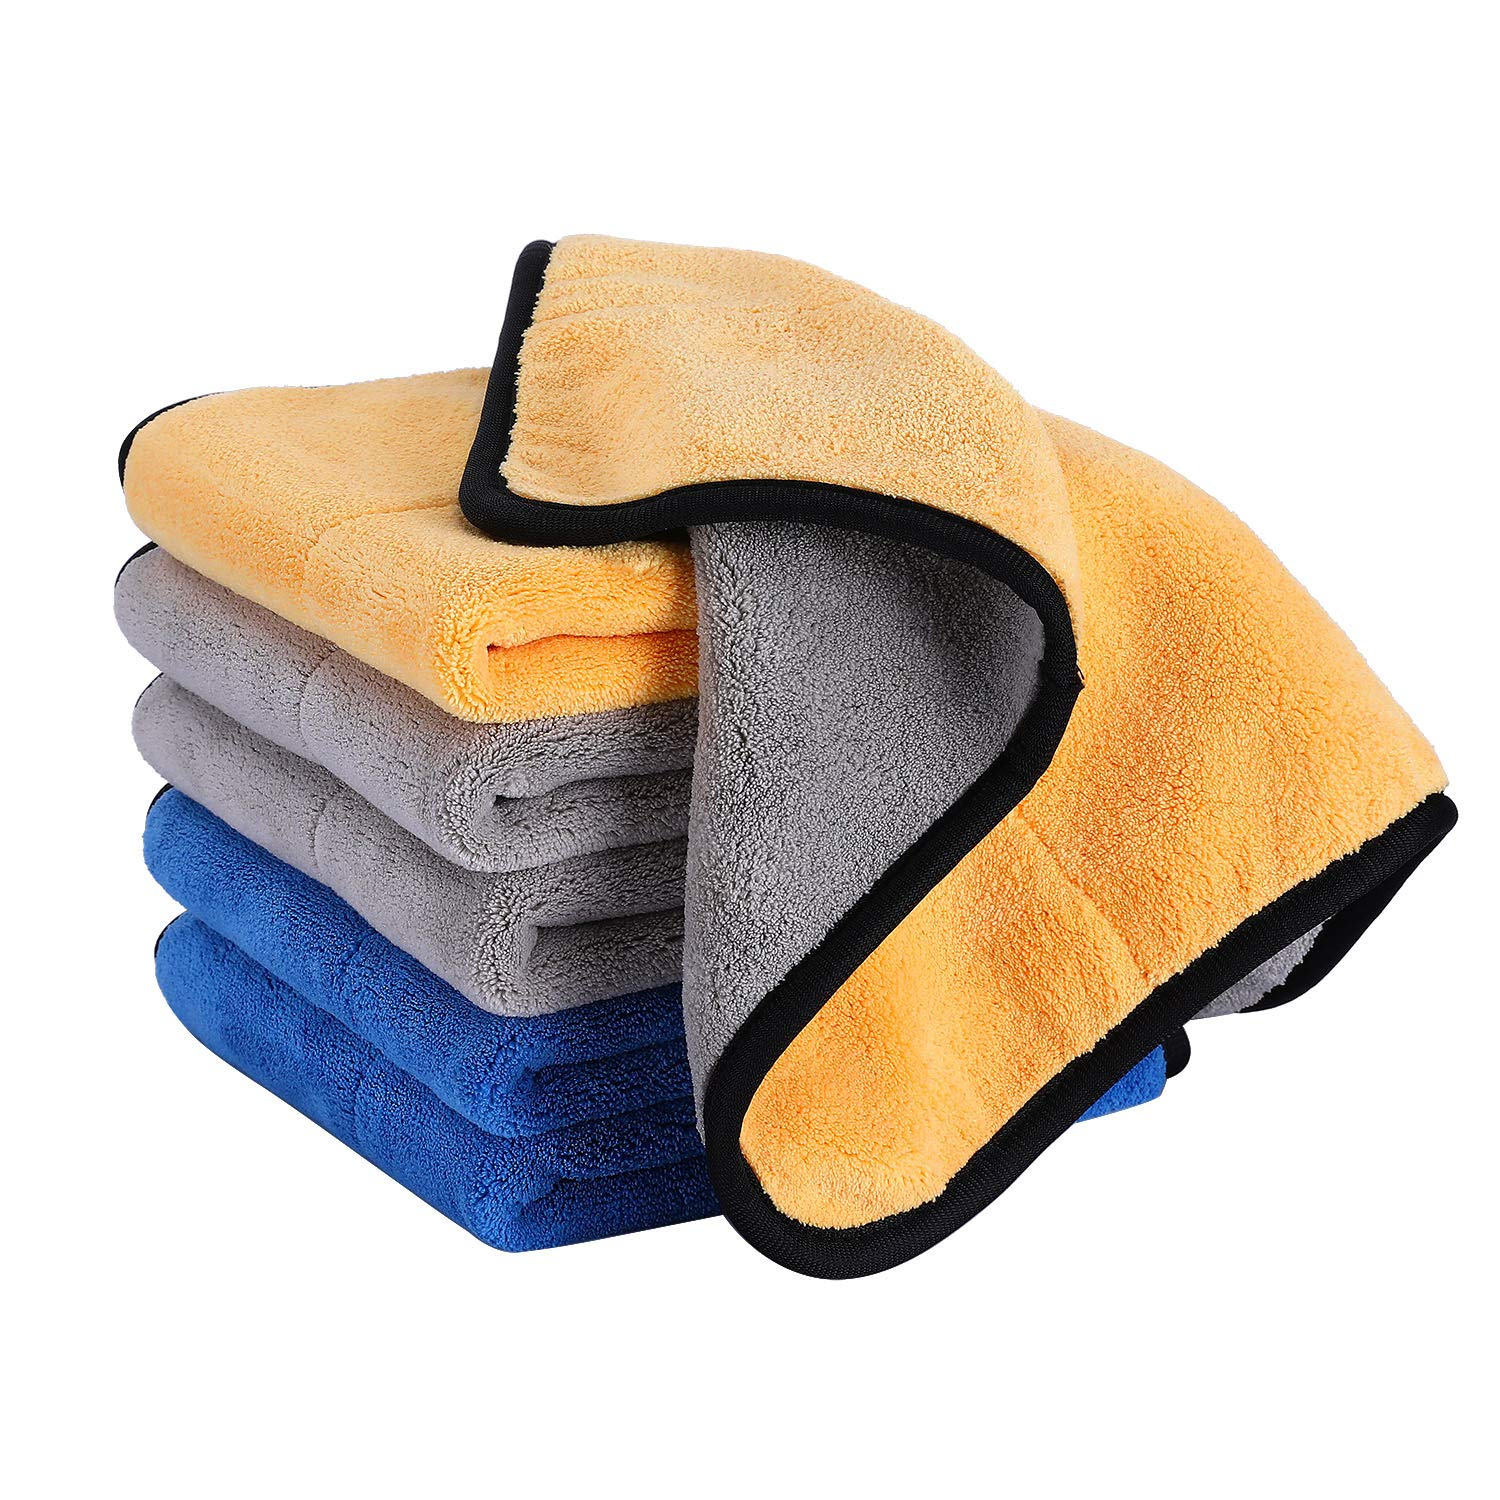 3 Pack Super Absorbent Lint Free Dual Layer Microfiber Cleaning Cloths 14.5x14.5 HOUSE AGAIN Ultra-Thick Car Microfiber Cleaning Towels Silk Edging Car Wash Waxing Polishing and Drying Towels